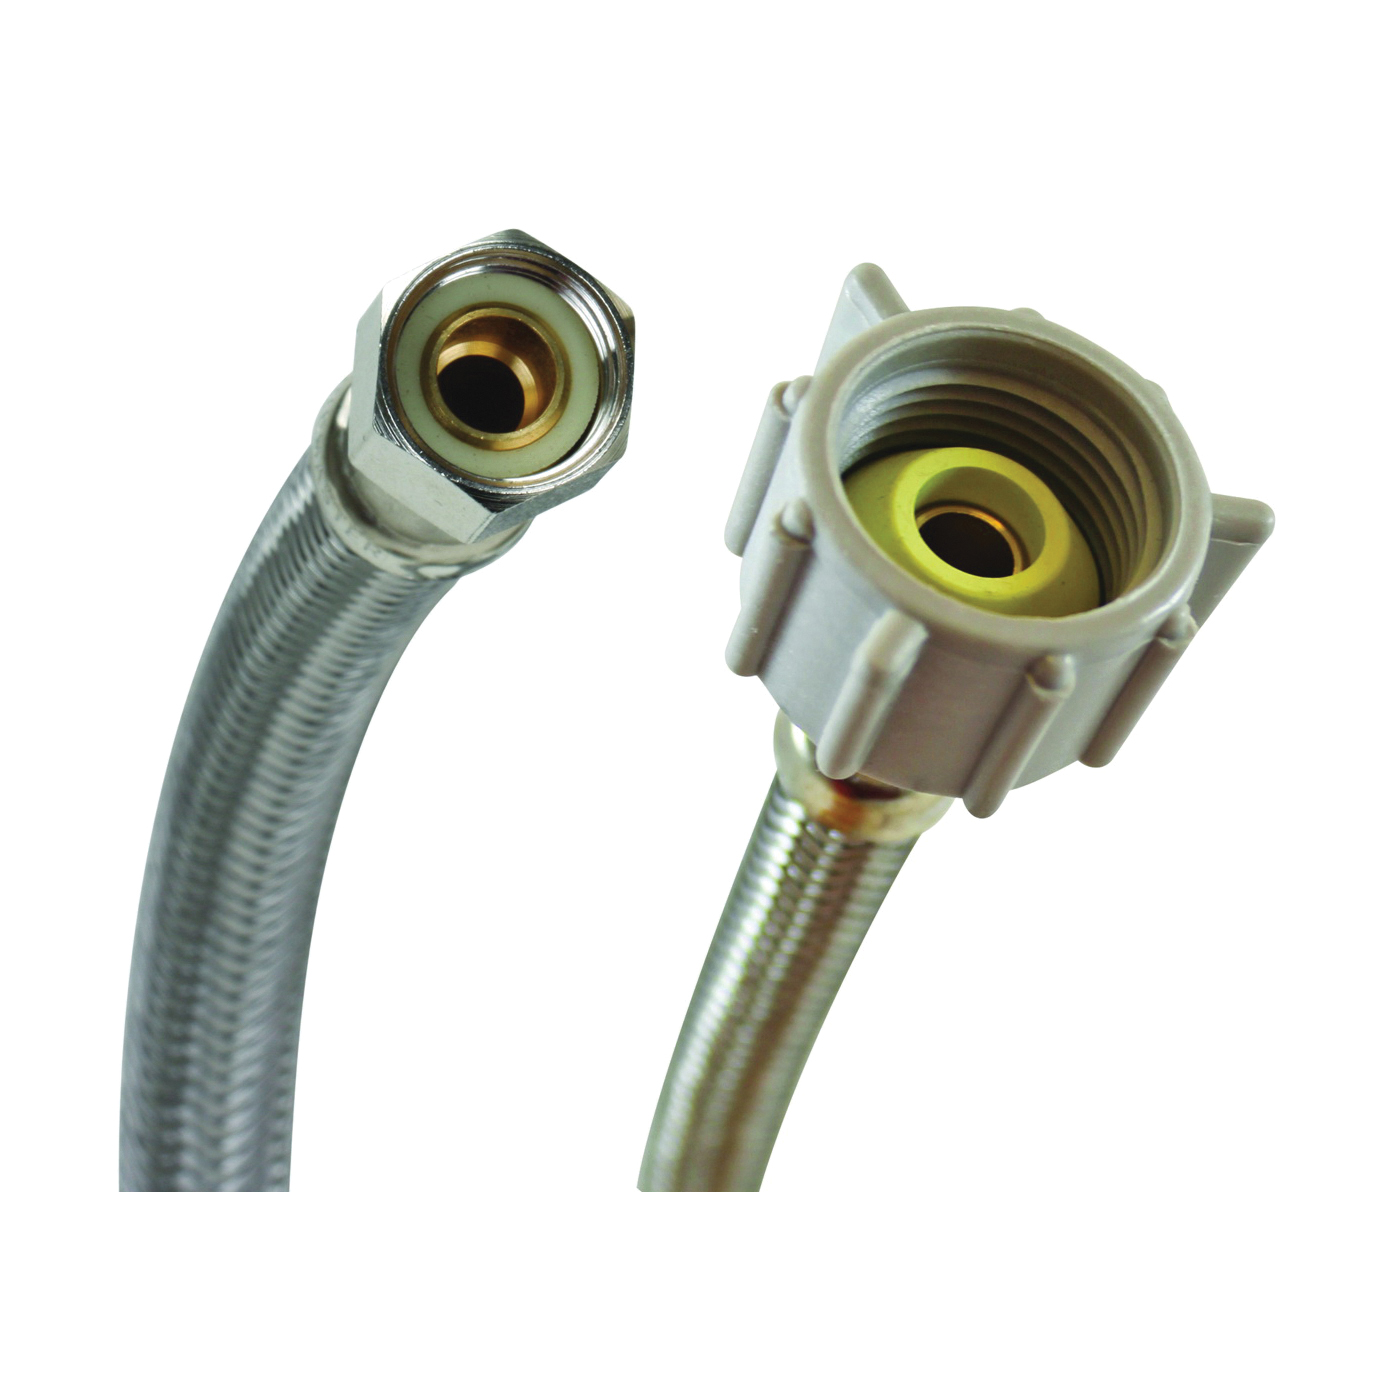 Picture of FLUIDMASTER B1T06 Toilet Connector, 3/8 in Inlet, Compression Inlet, 7/8 in Outlet, Ballcock Outlet, 6 in L